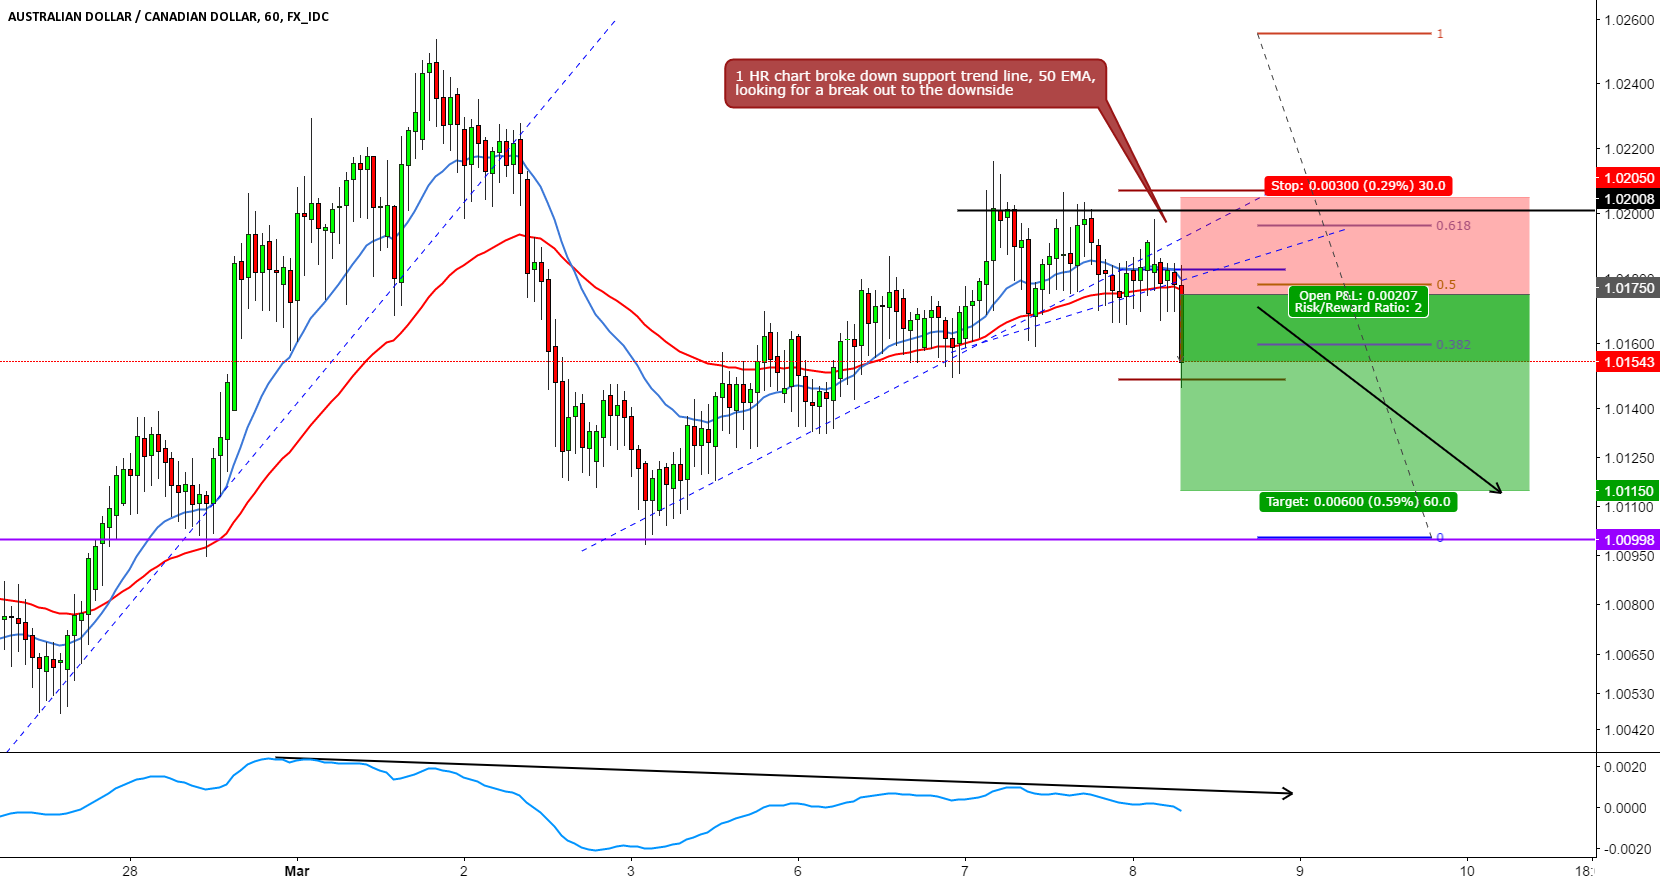 AUDCAD SHORT INTRADAY BREAK OUT TRADE SETUP